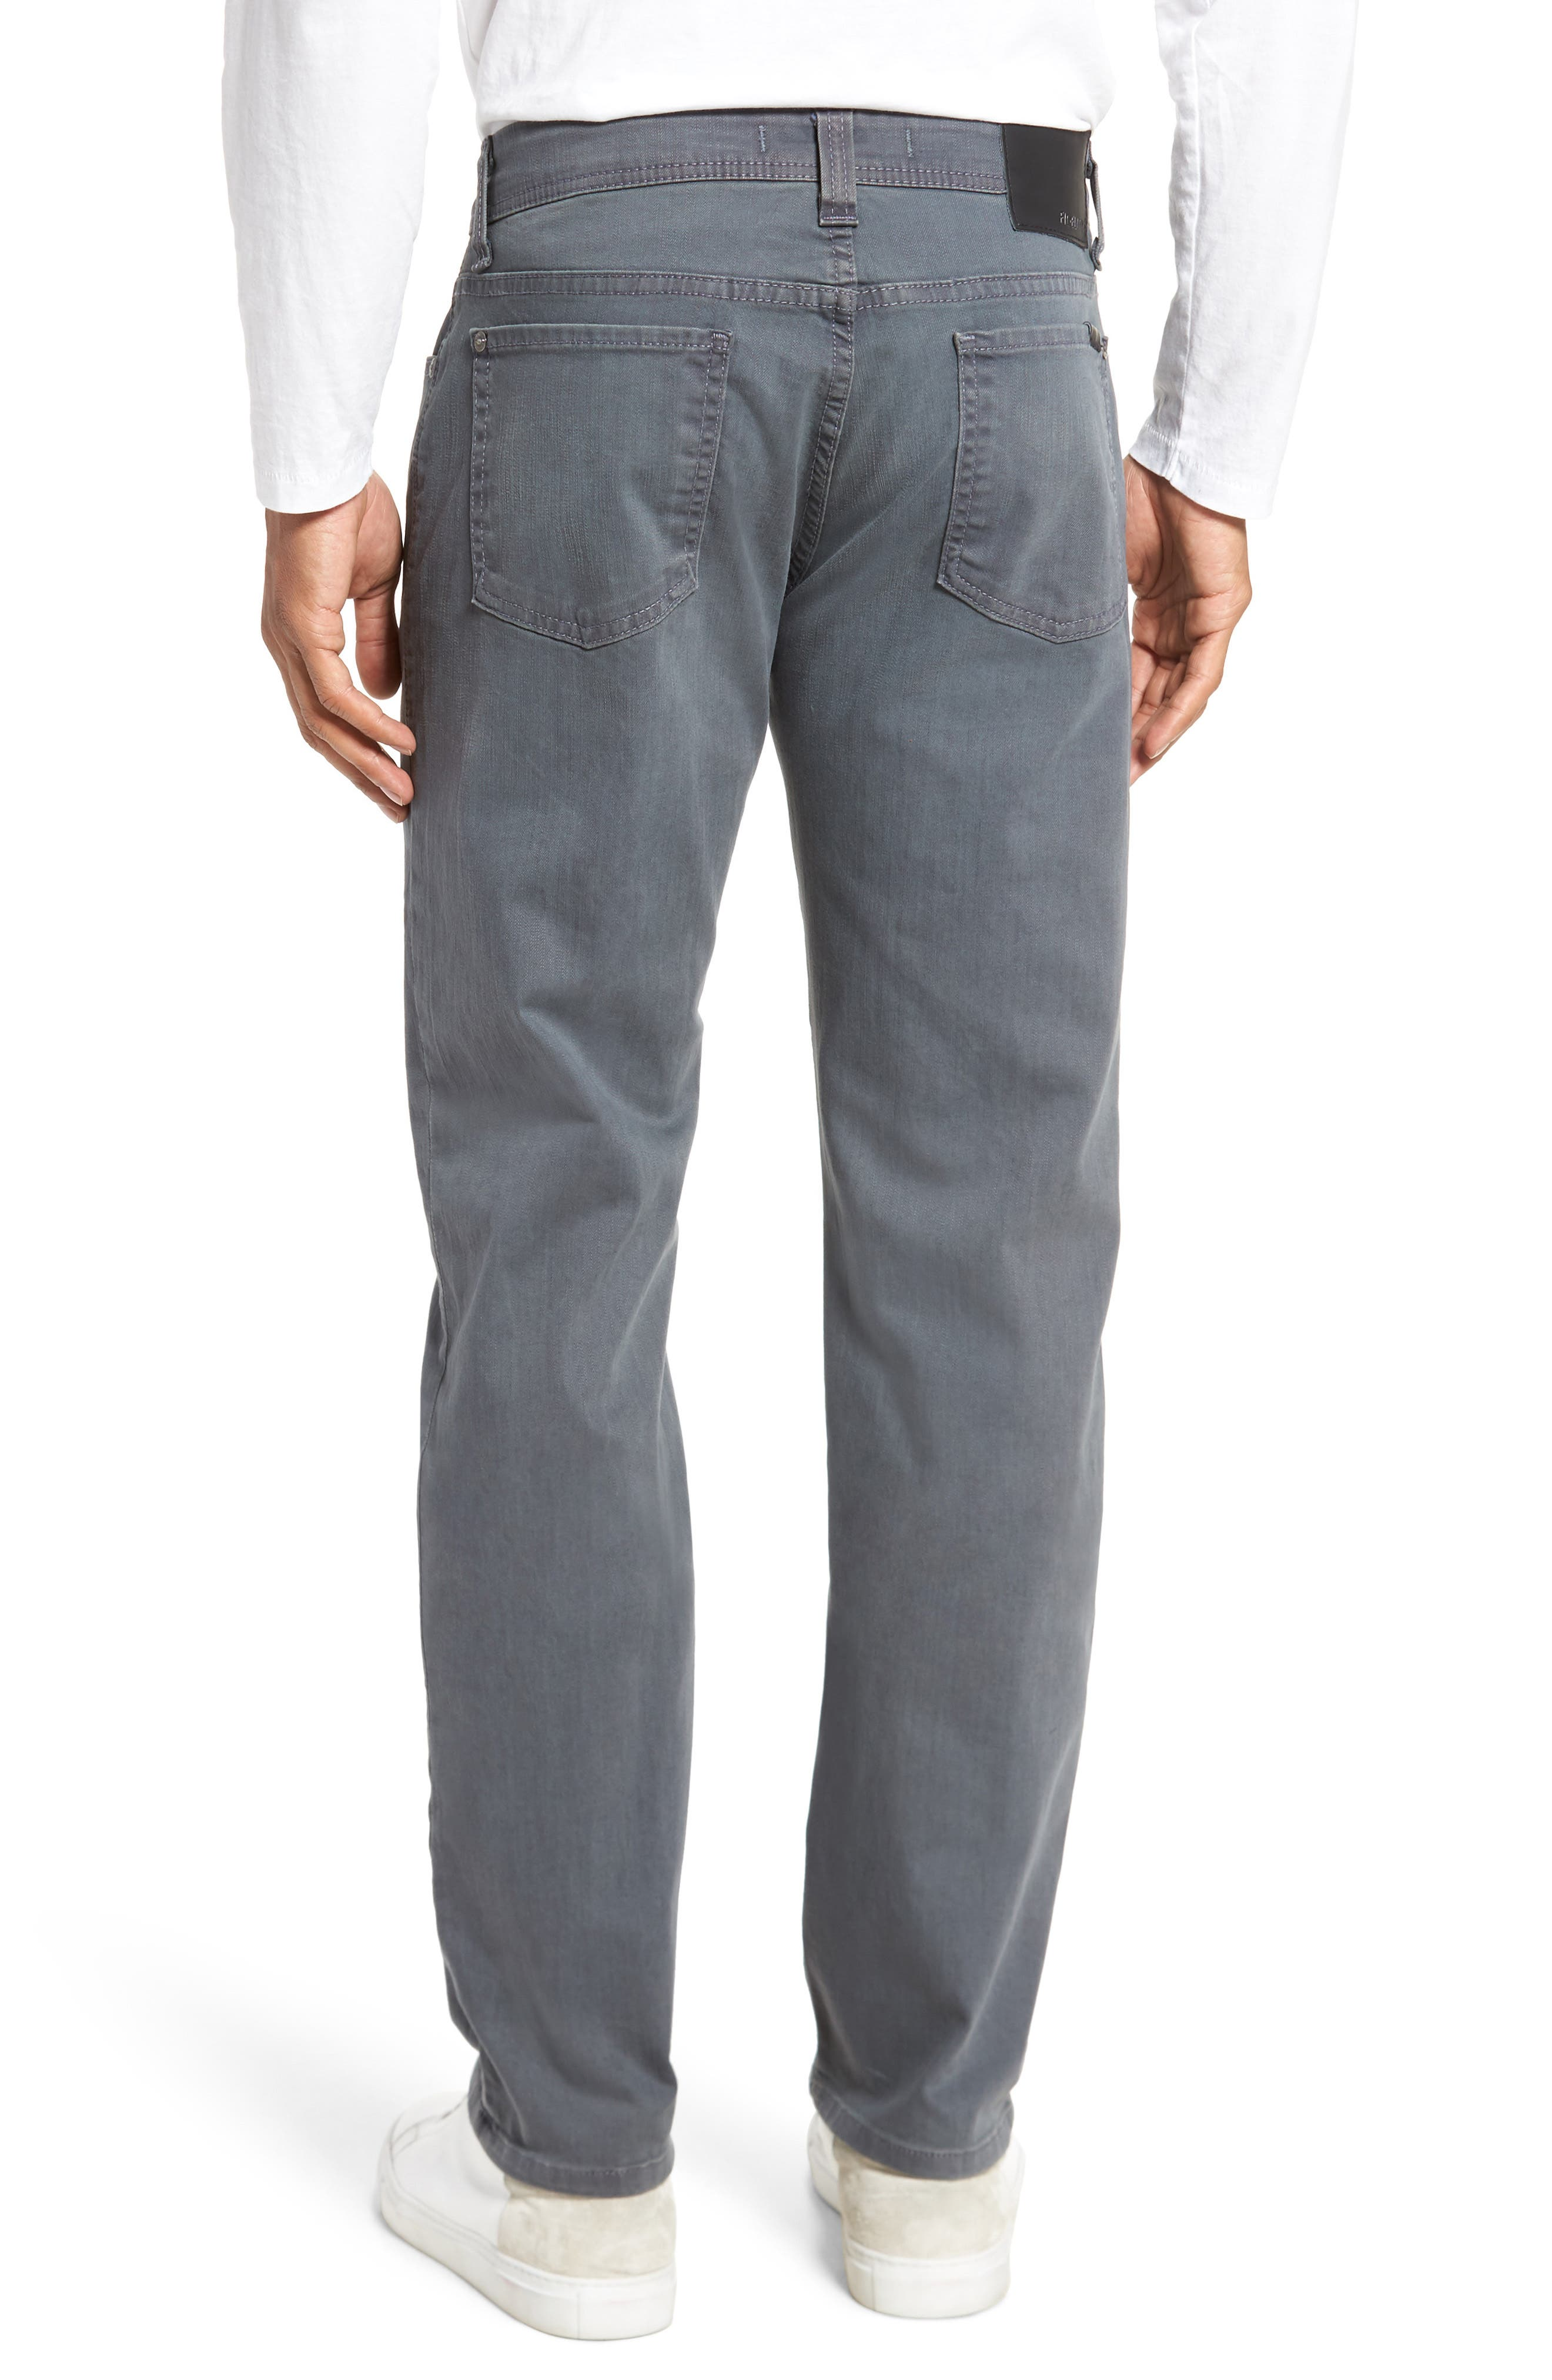 Jimmy Slim Straight Fit Jeans,                             Alternate thumbnail 2, color,                             Oyster